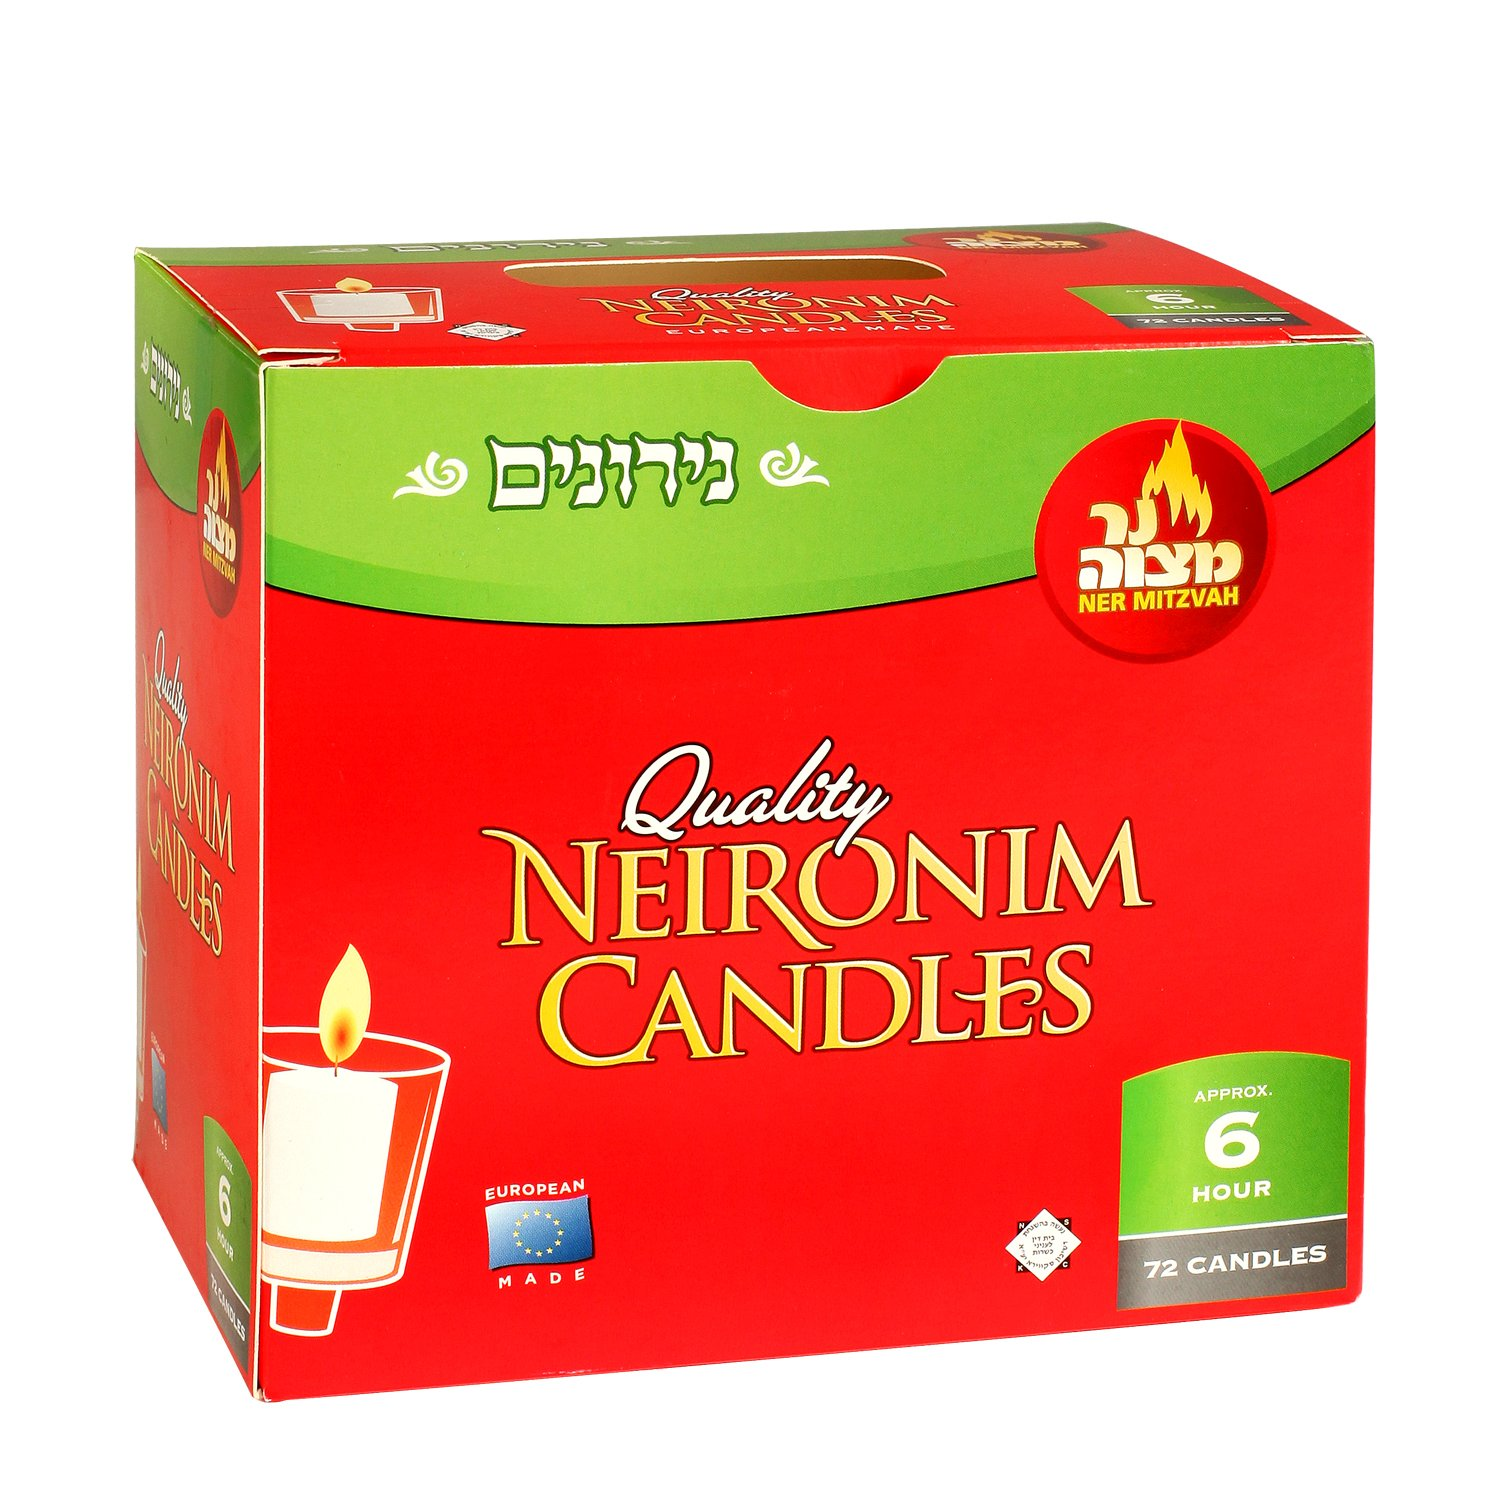 3 Hour Neironim Candles by Ner Mitzvah Shabbat and Votive Wax Candle 24 Count